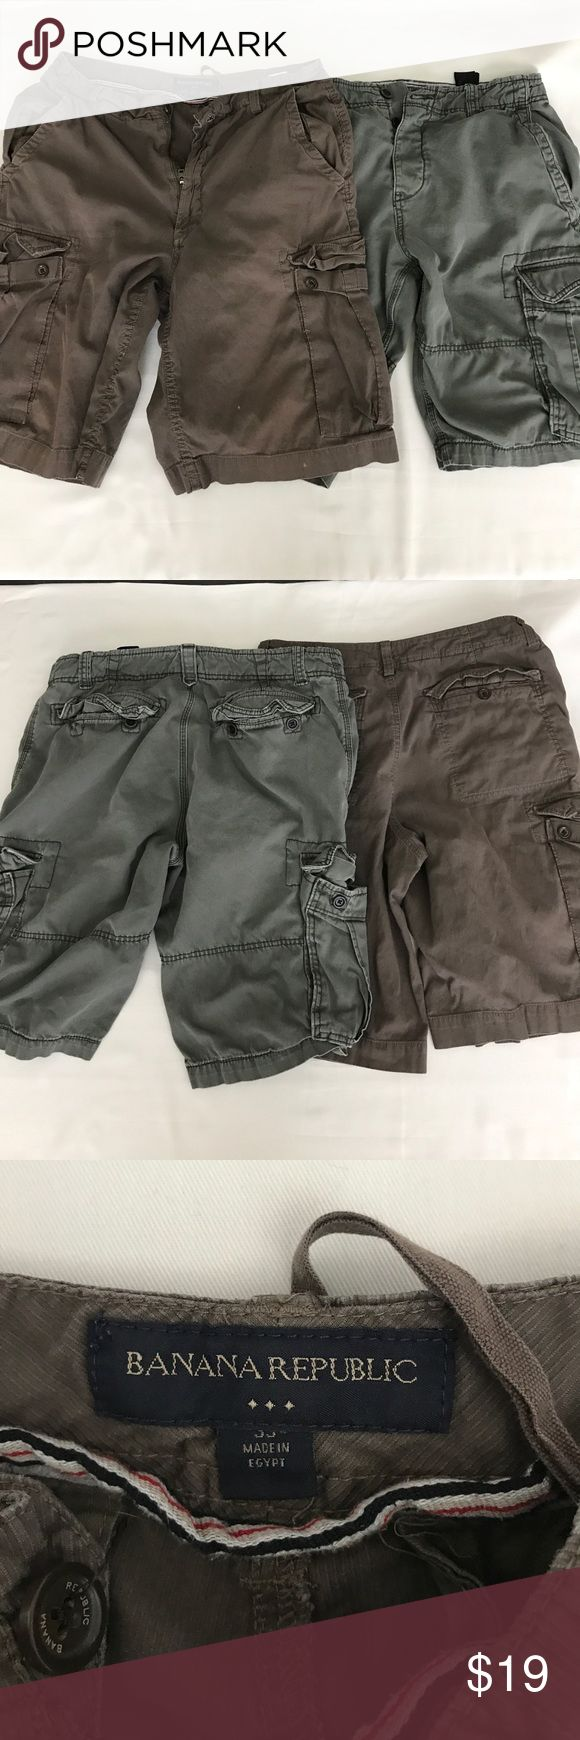 Banana Republic cargo shorts bundle deal. Banana Republic, cargo short bundle deal. Can't go wrong with these cargo shorts.  Stone washed look. Banana Republic pair of shorts has 2 tiny bleach stains. See pics.  Priced to sell. Banana Republic Shorts Cargo